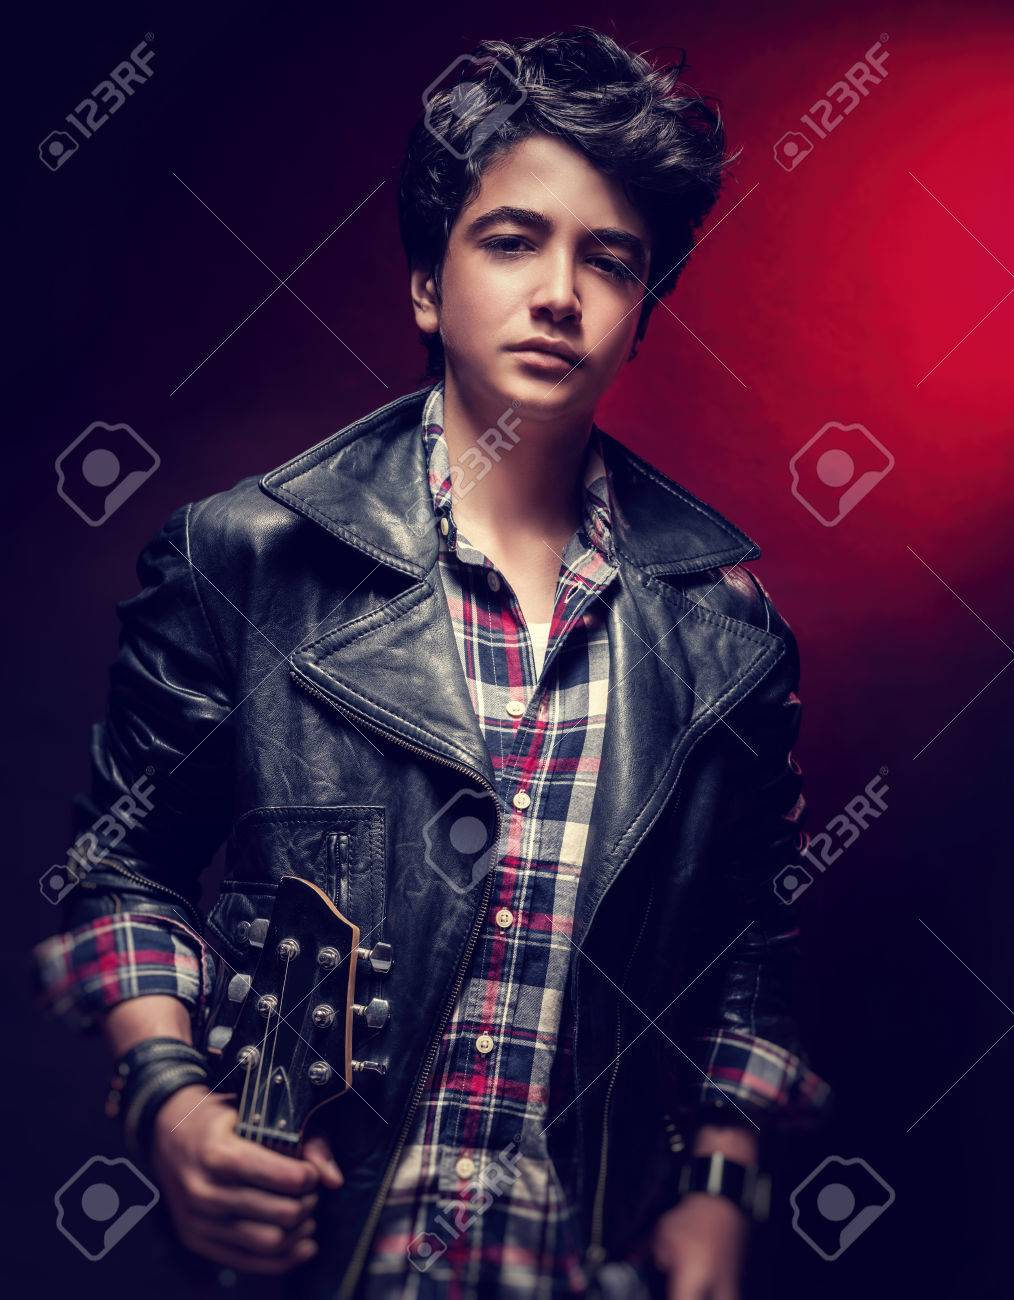 1b50cea5f Attractive teen guy posing with guitar over dark red background,..